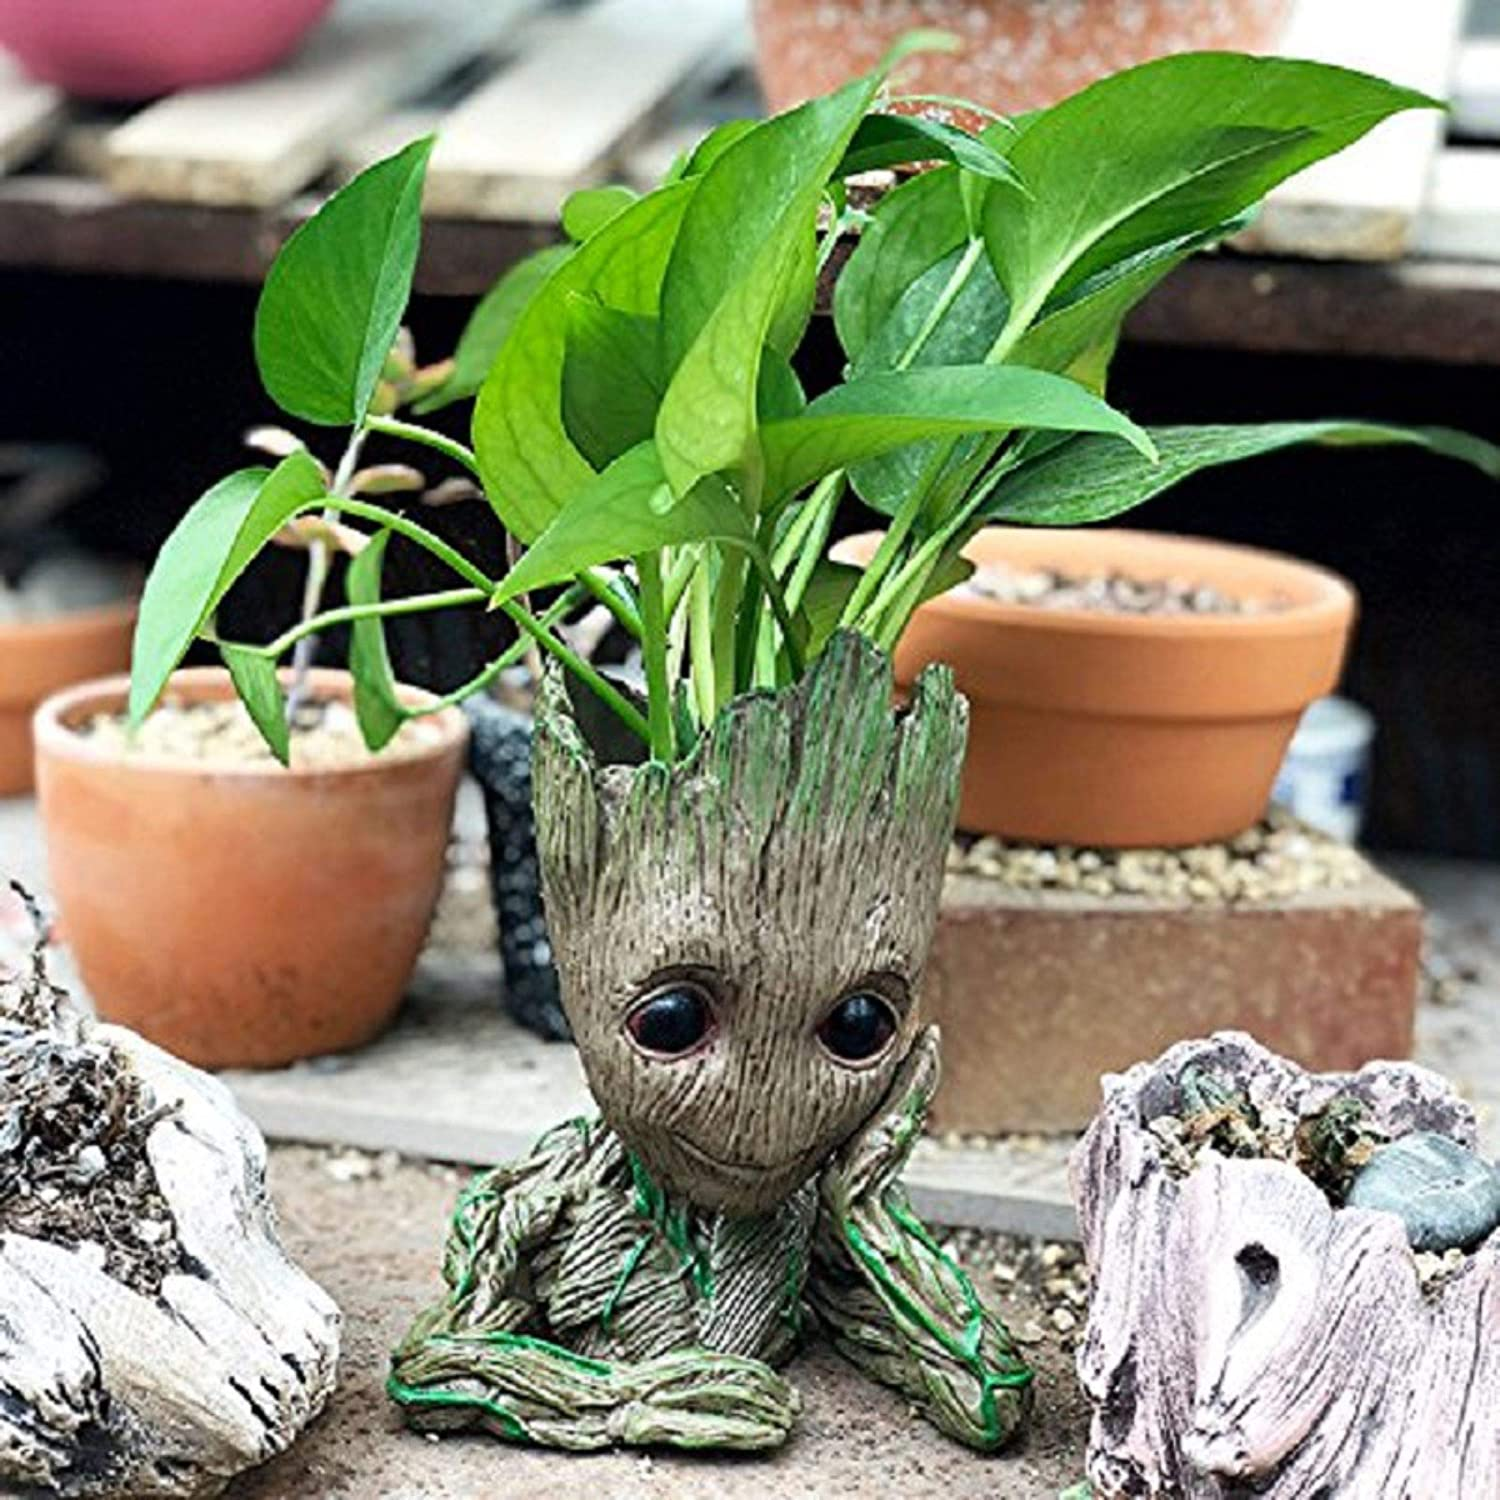 Decorative Indoor Action Hero for Children Great Toy Gift 5.5in shake beauty Baby Flowerpot Guardians of Cute Model Toy with Pen Pot Holder